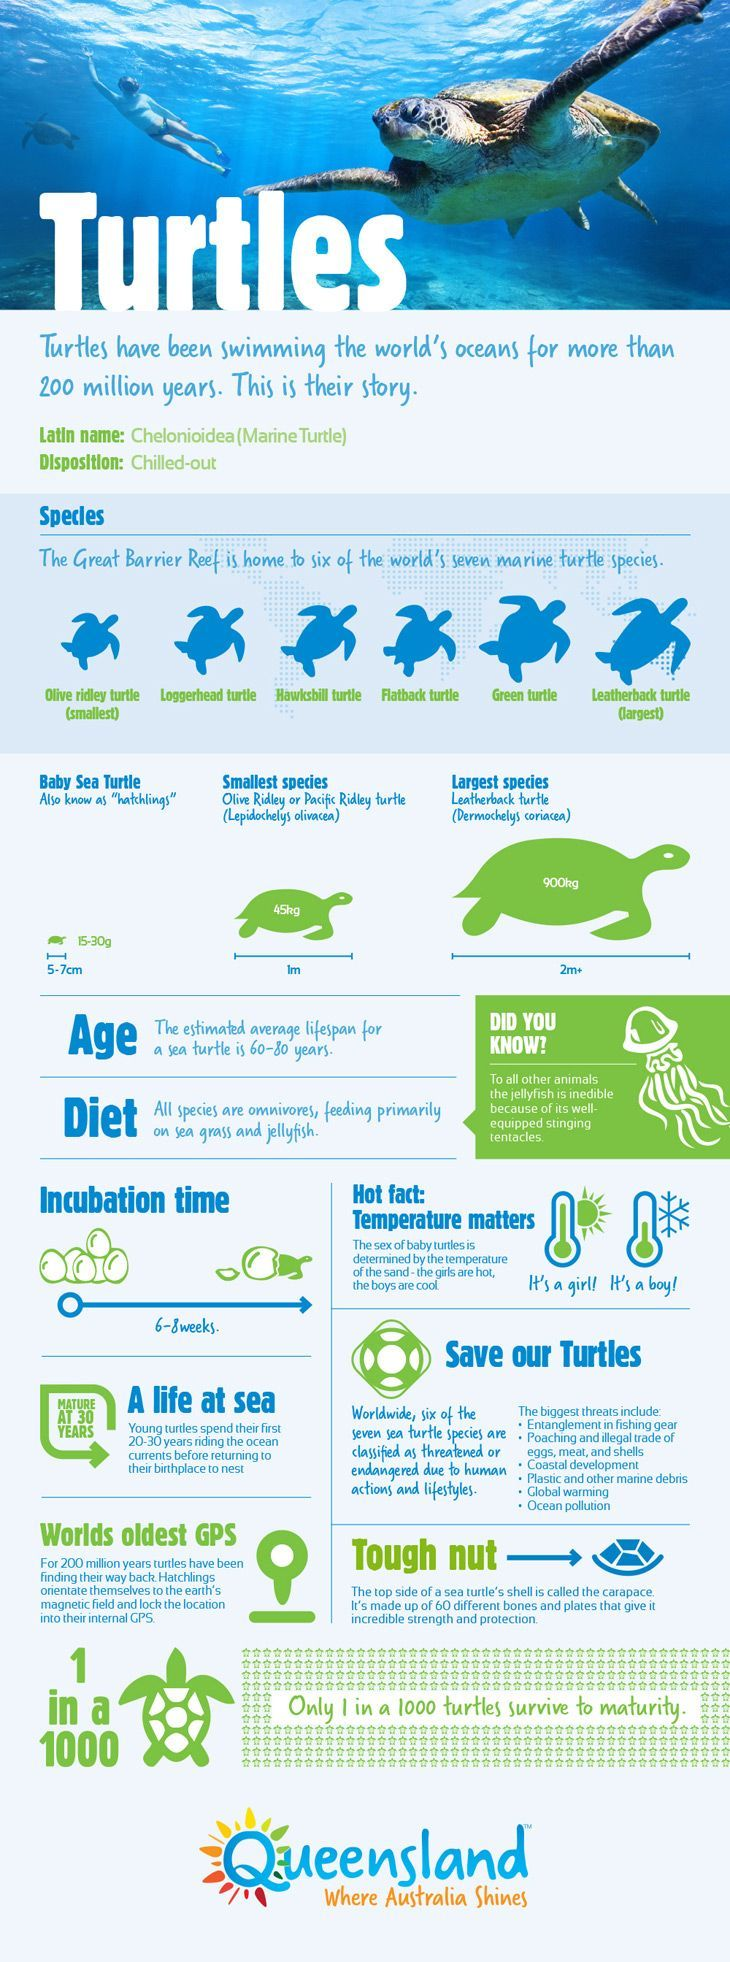 Turtles have been swimming the world's oceans for more than 200 million years. This is their story.  #infographic #thisisqueensland